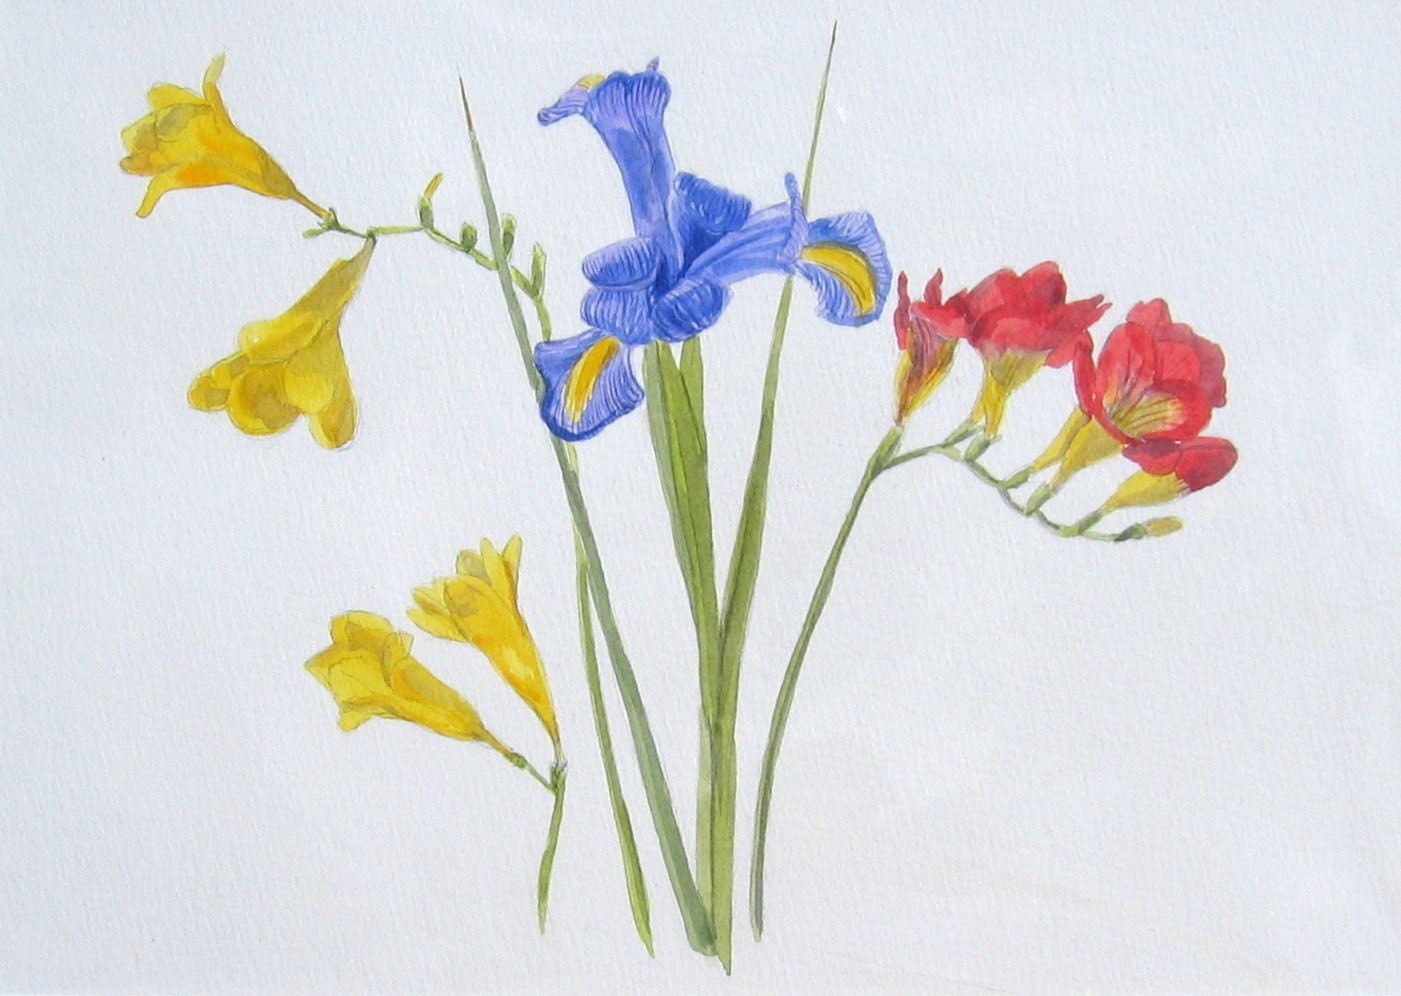 Iris and Fresias - Original Watercolour Painting